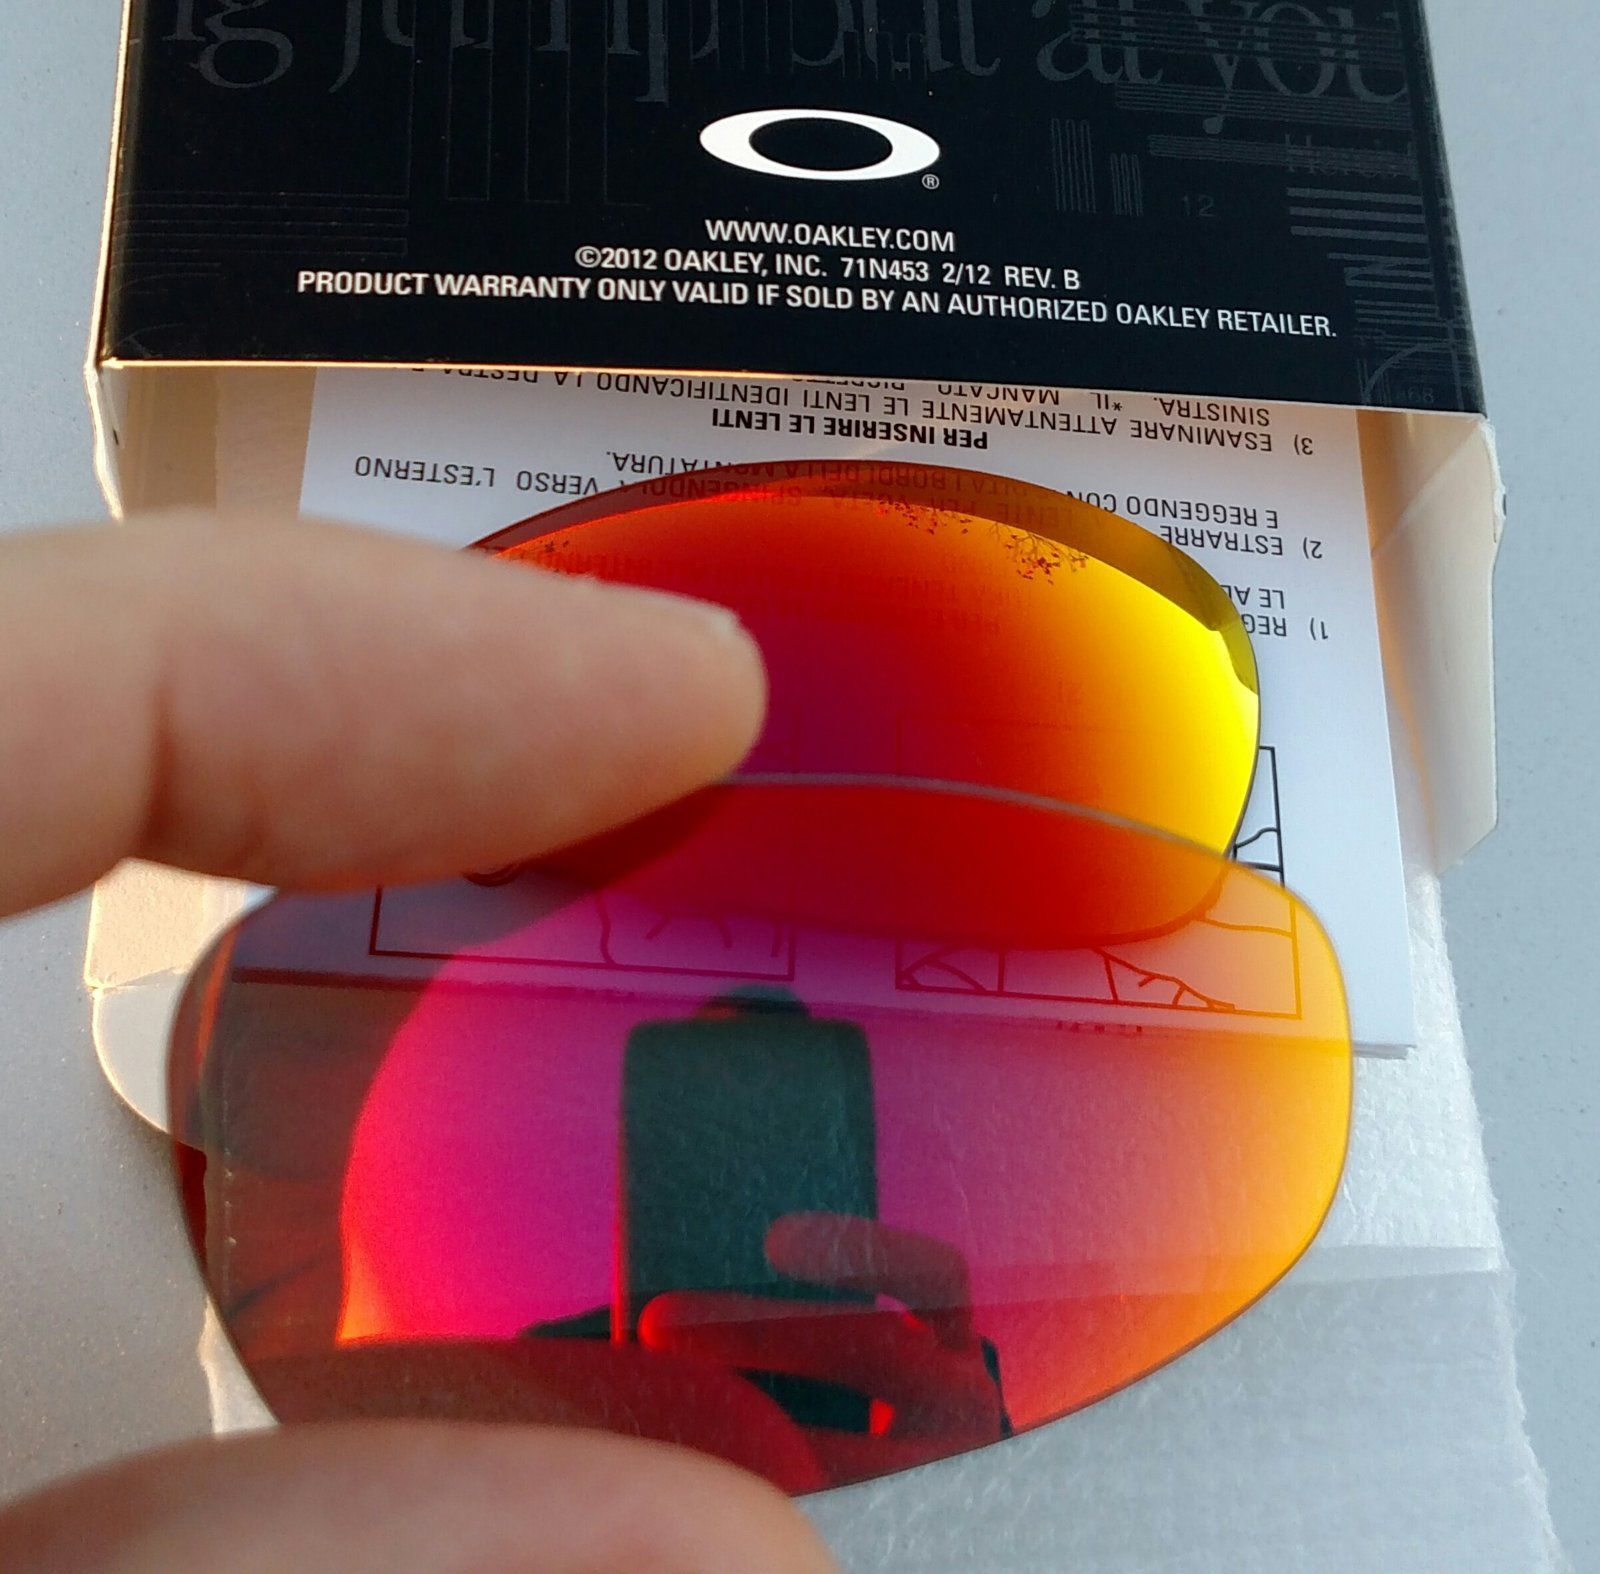 XX & JULIET CUSTOM CUT LENSES FOR X-METALS - IMG_20161108_163635.jpg